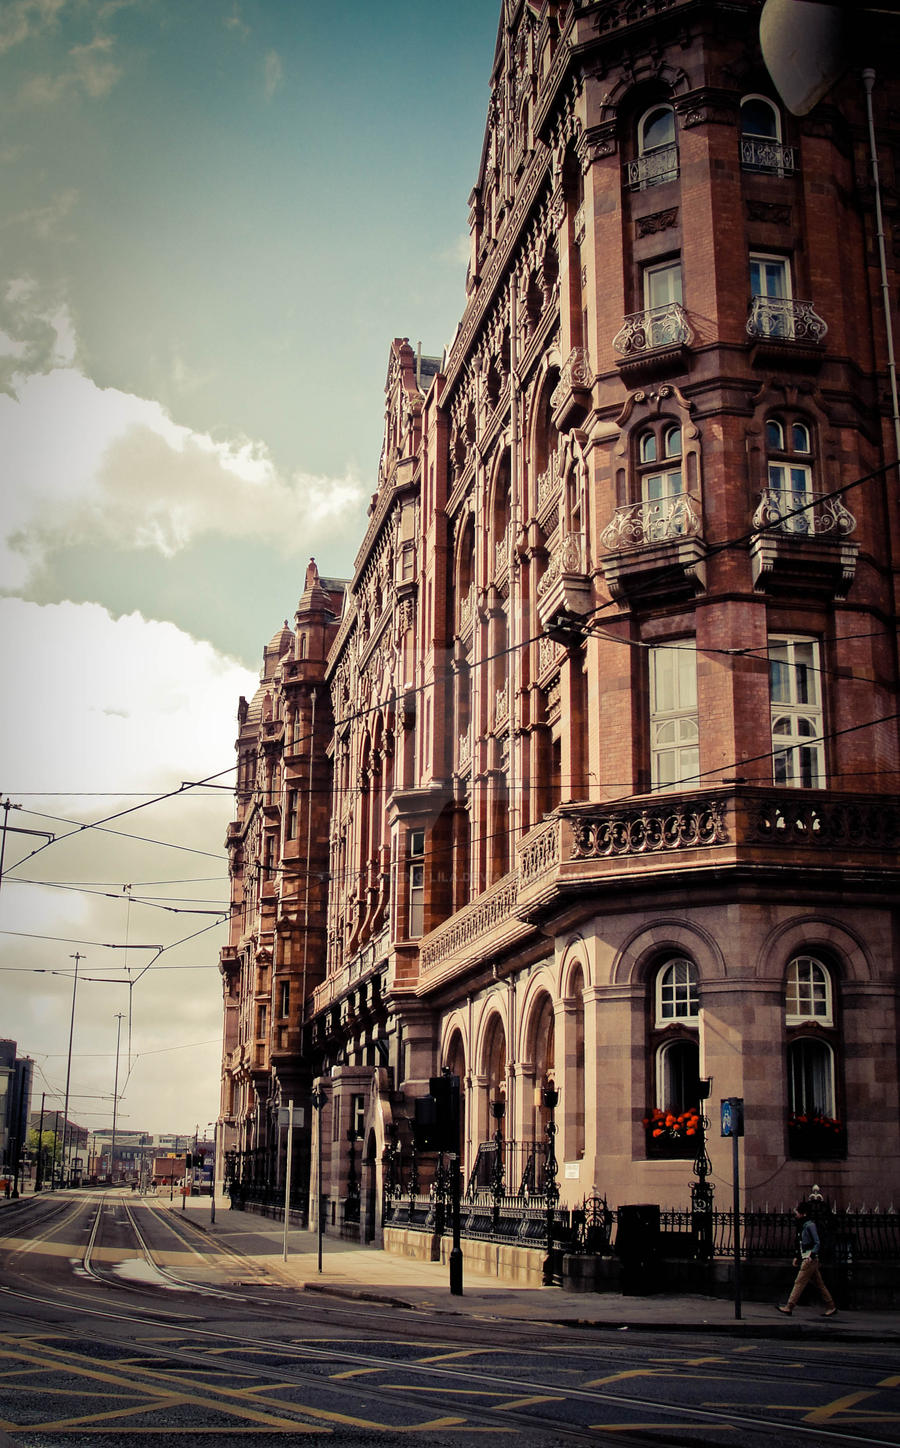 Streets of Manchester by keep-smiling-lila